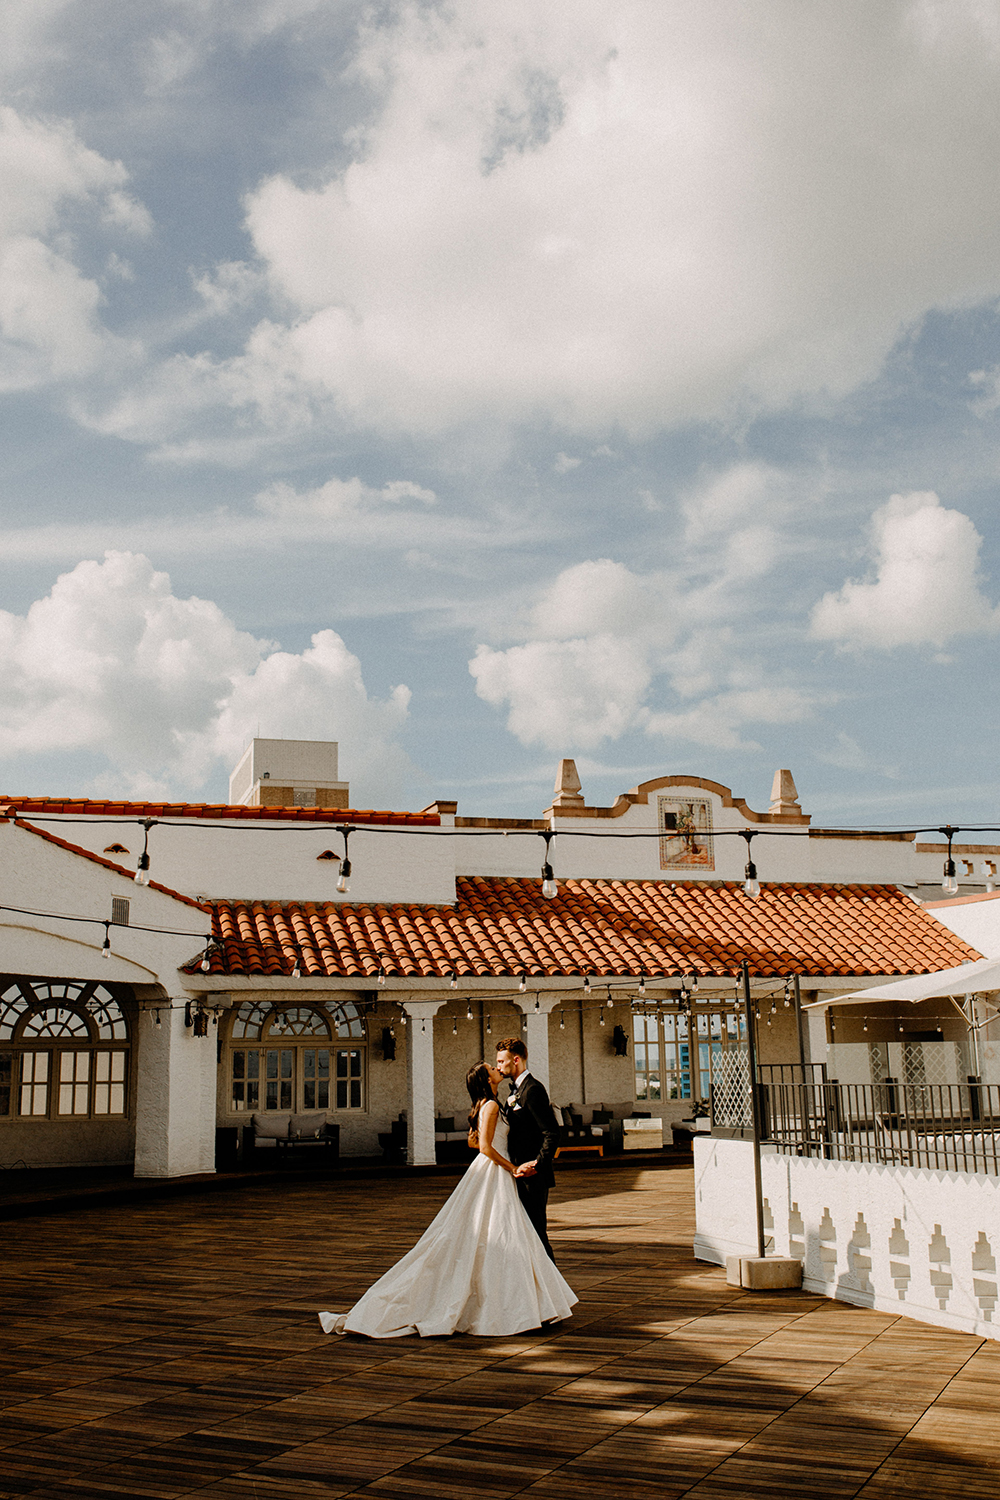 hotel wedding - venue - St. Anthony Hotel